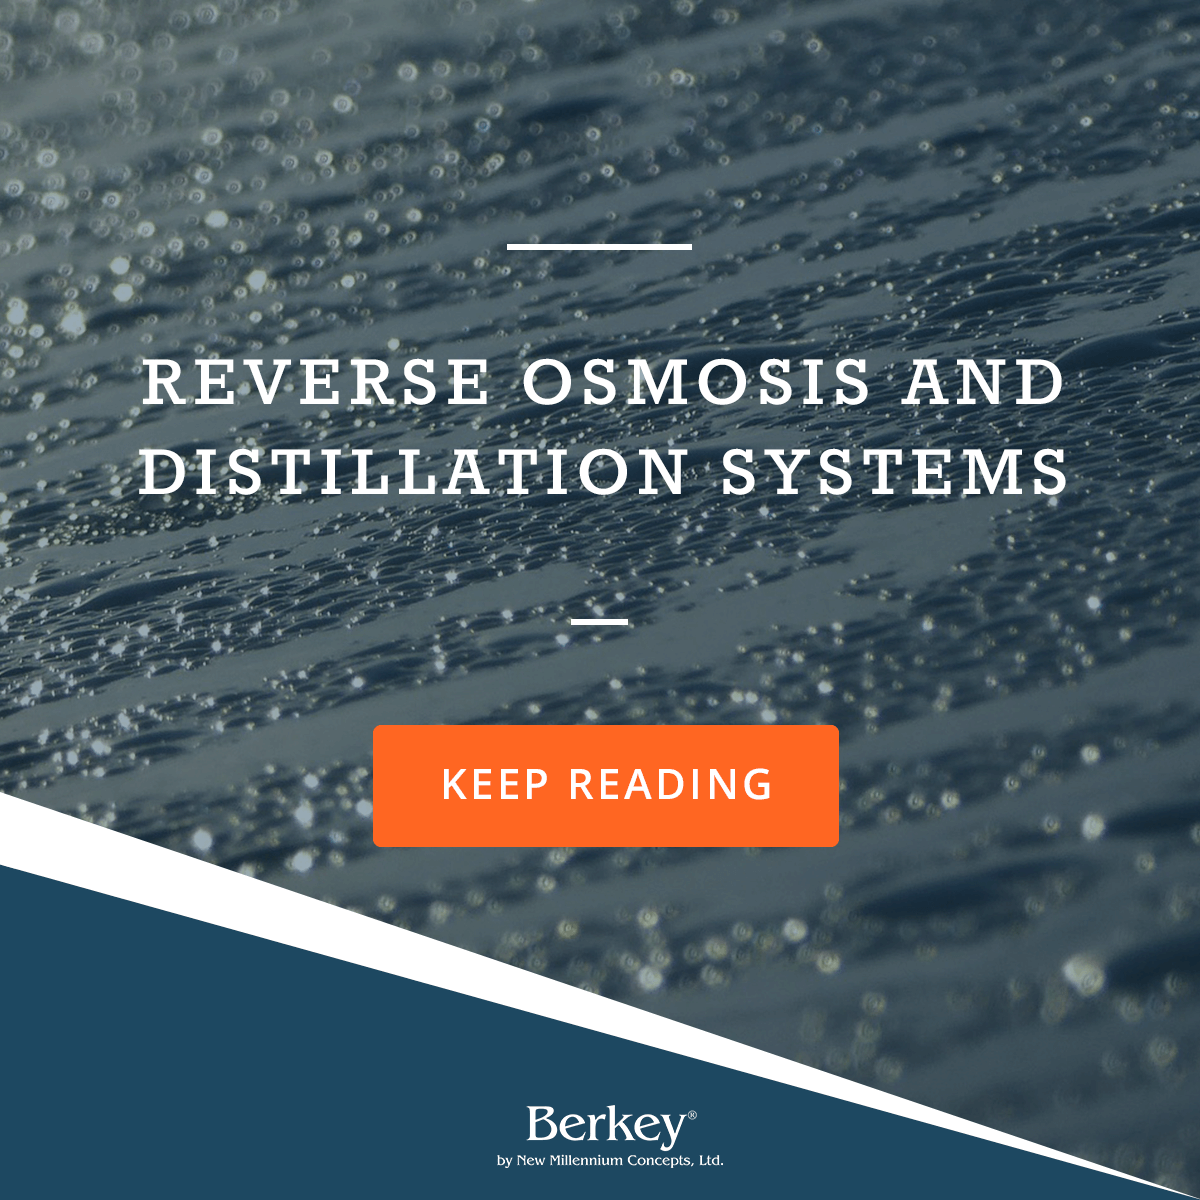 An Overview of Reverse Osmosis and Distillation Systems